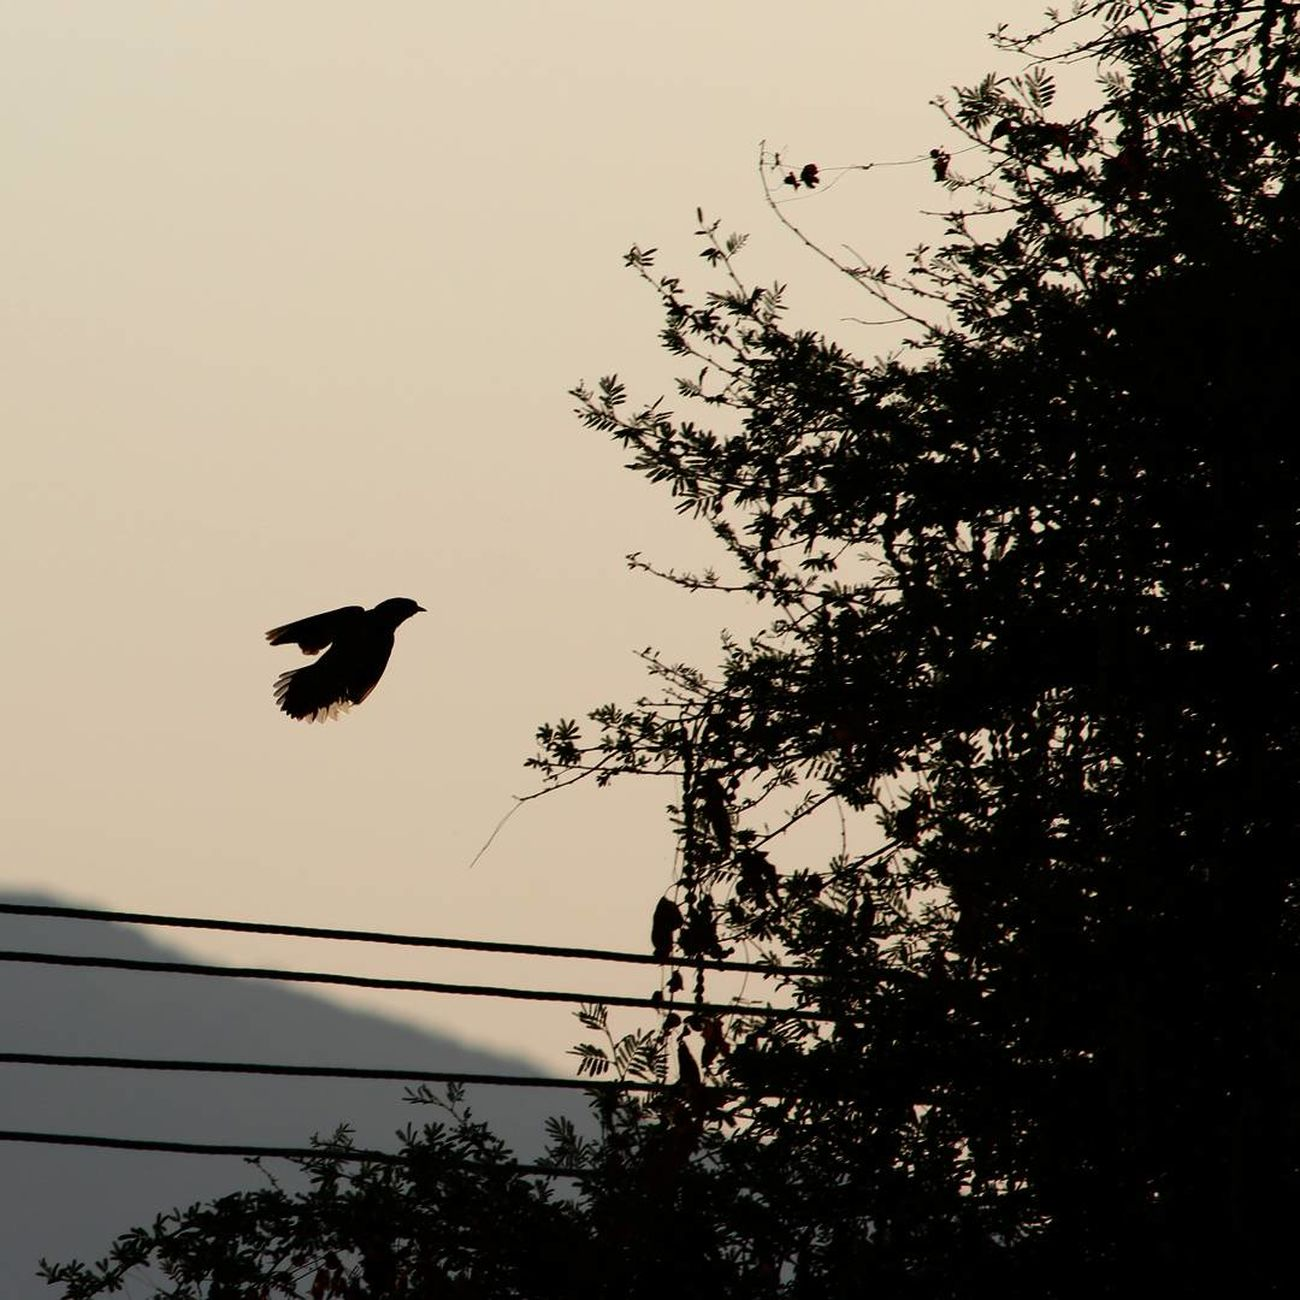 Bird Flying Sunset Silhouette Animals In The Wild Animal WildlifeTree Window Animal Themes No People Nature One Animal Sky Low Angle View Outdoors Hovering Beauty In Nature Moon Day Transportation Freshness Journey Cloud - Sky Nature